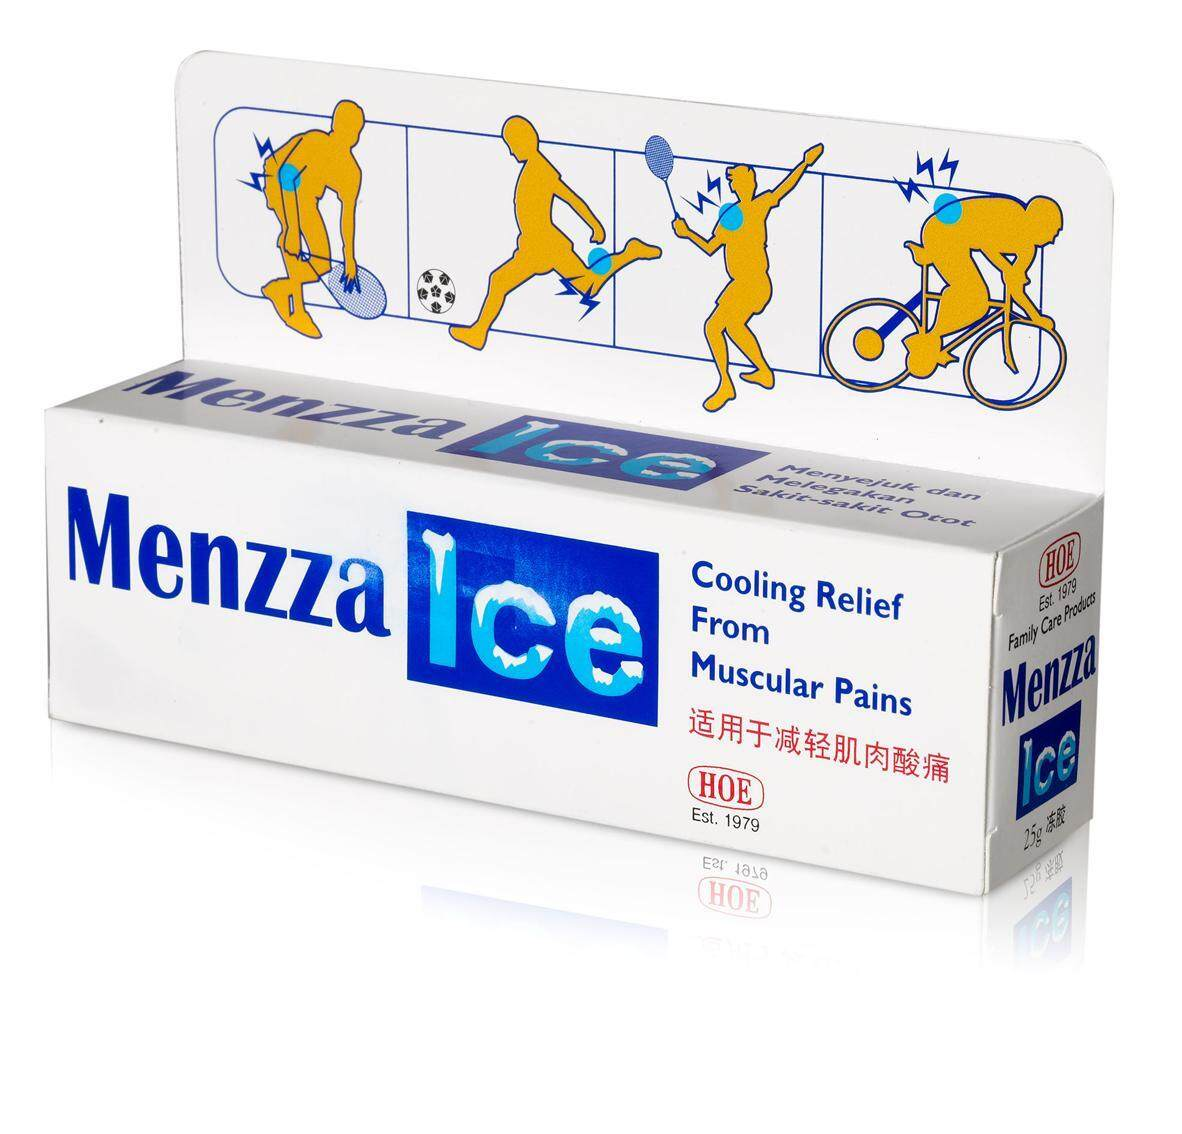 Menzza Ice Gel Cooling Relief 25g